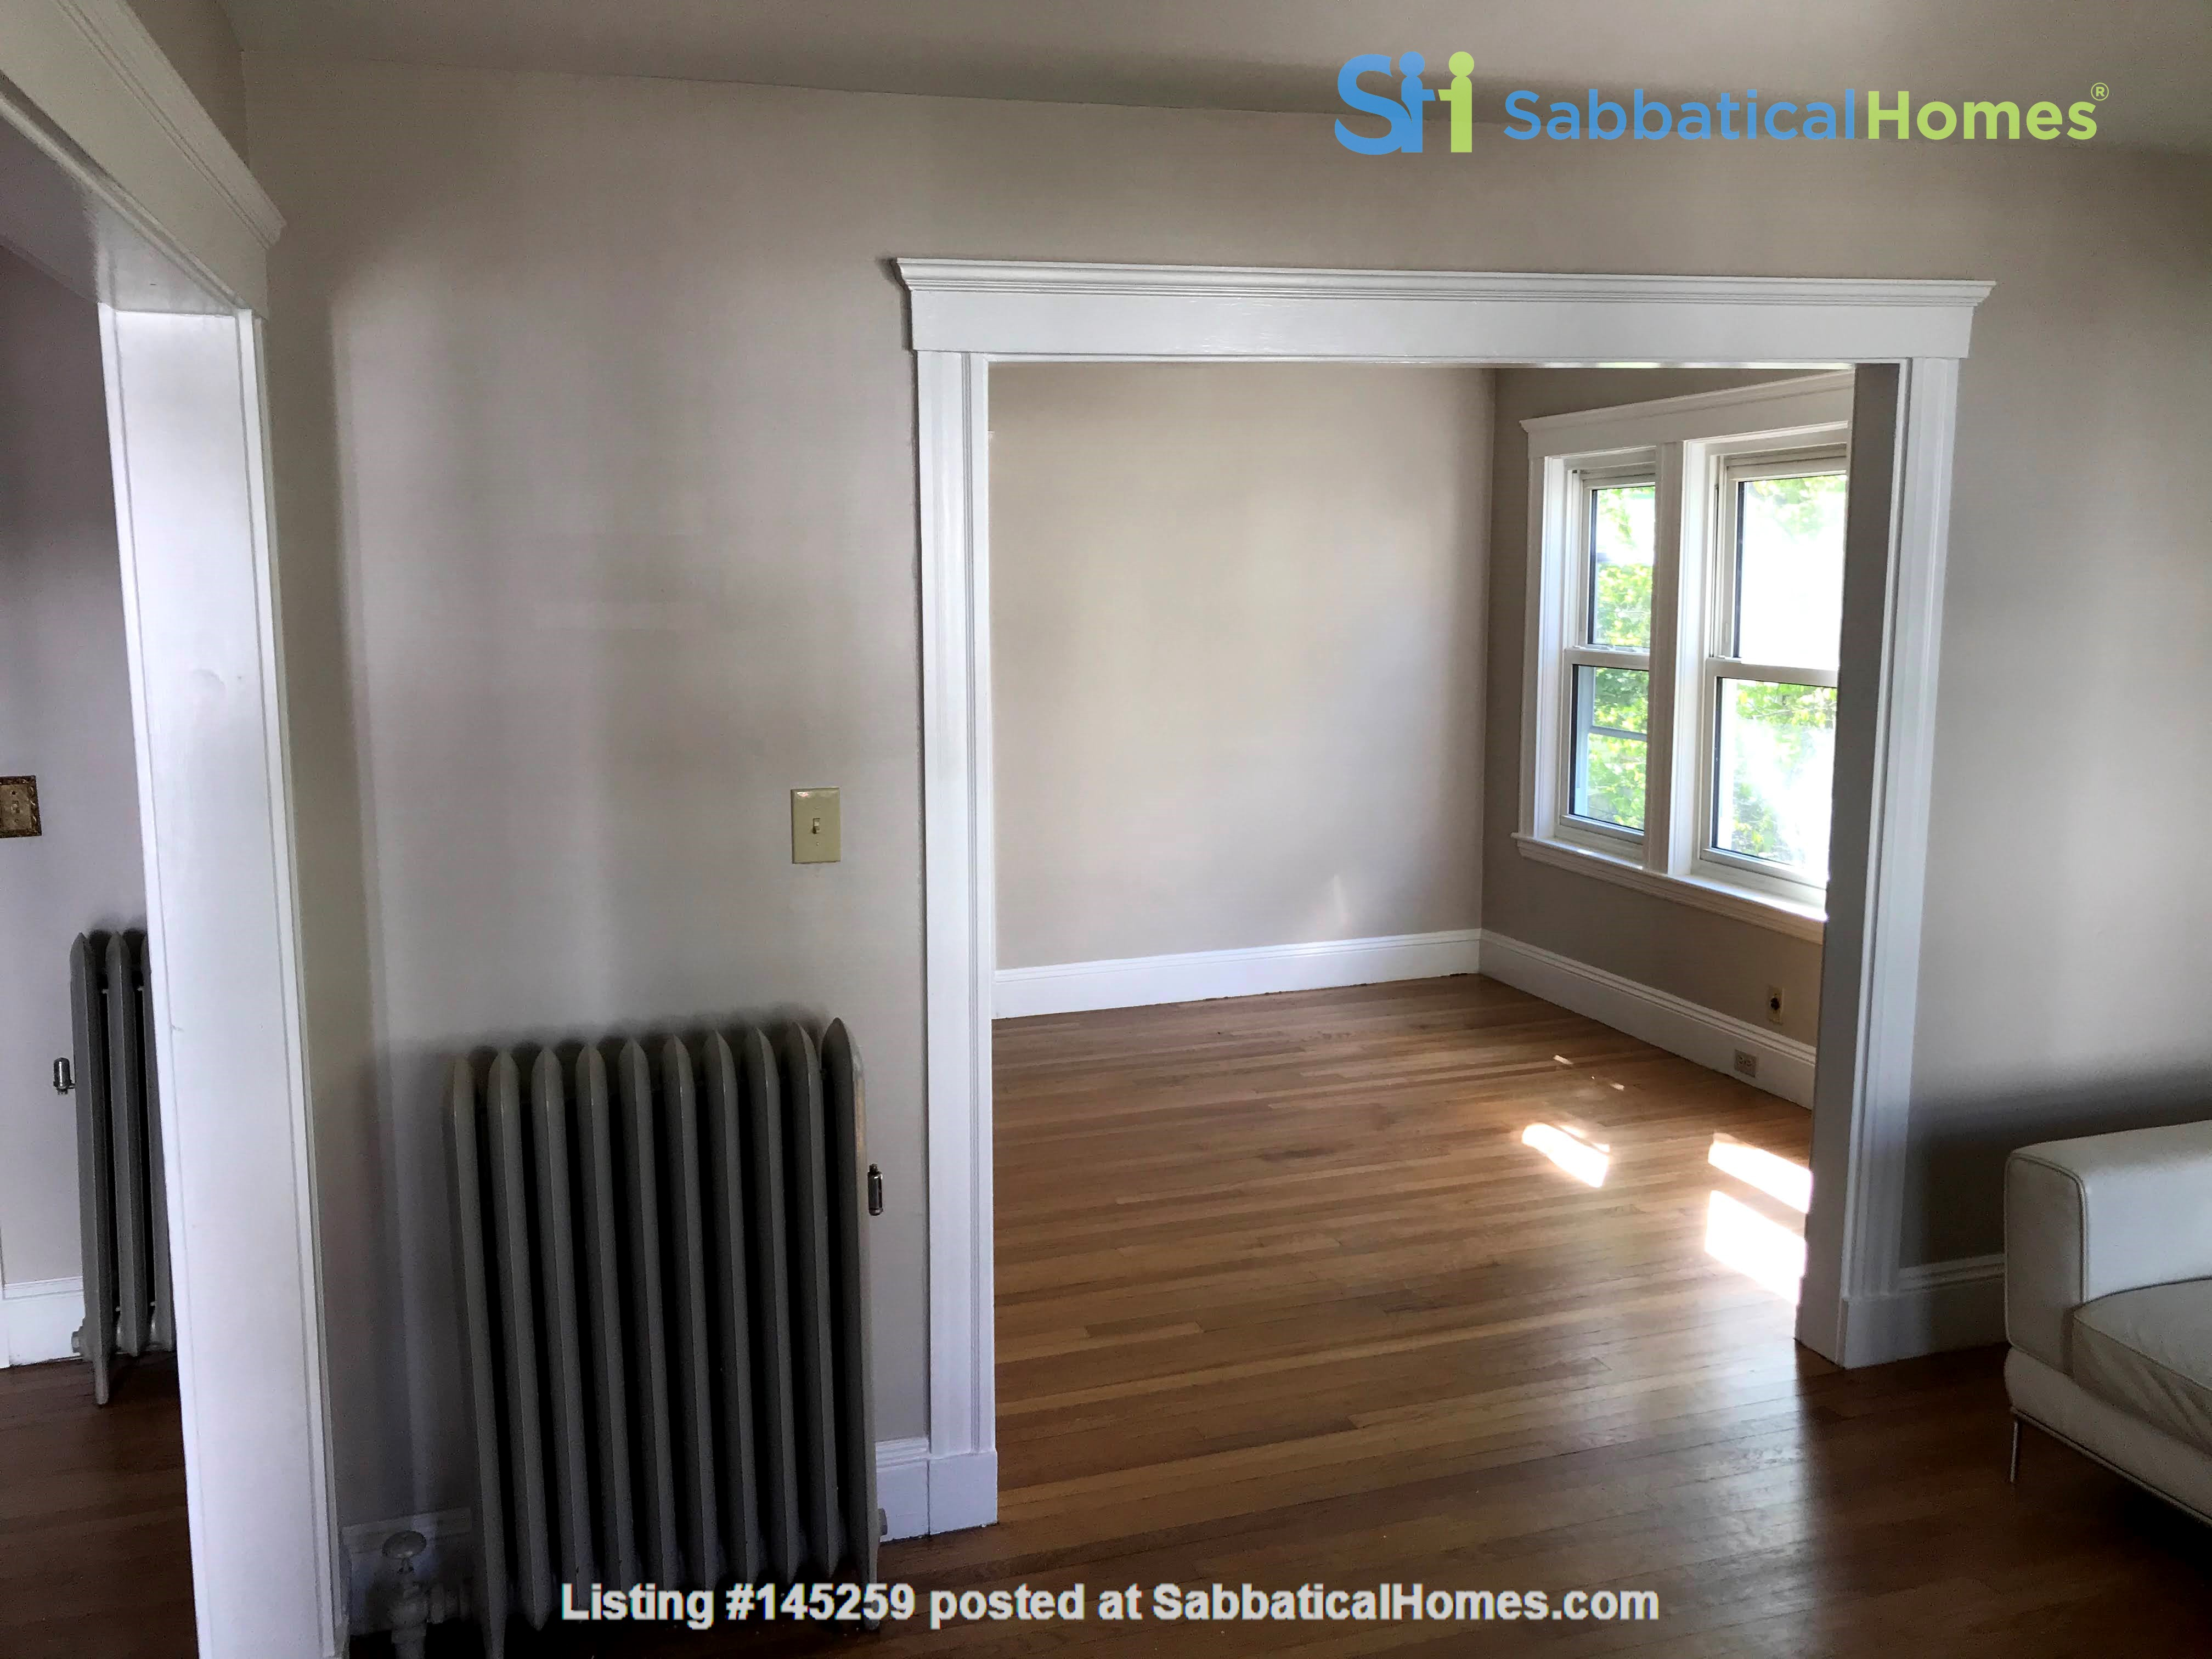 SOMERVILLE NEWLY RENOVATED APARTMENT WALKING DISTANCE FROM HARVARD Home Rental in Somerville, Massachusetts, United States 8